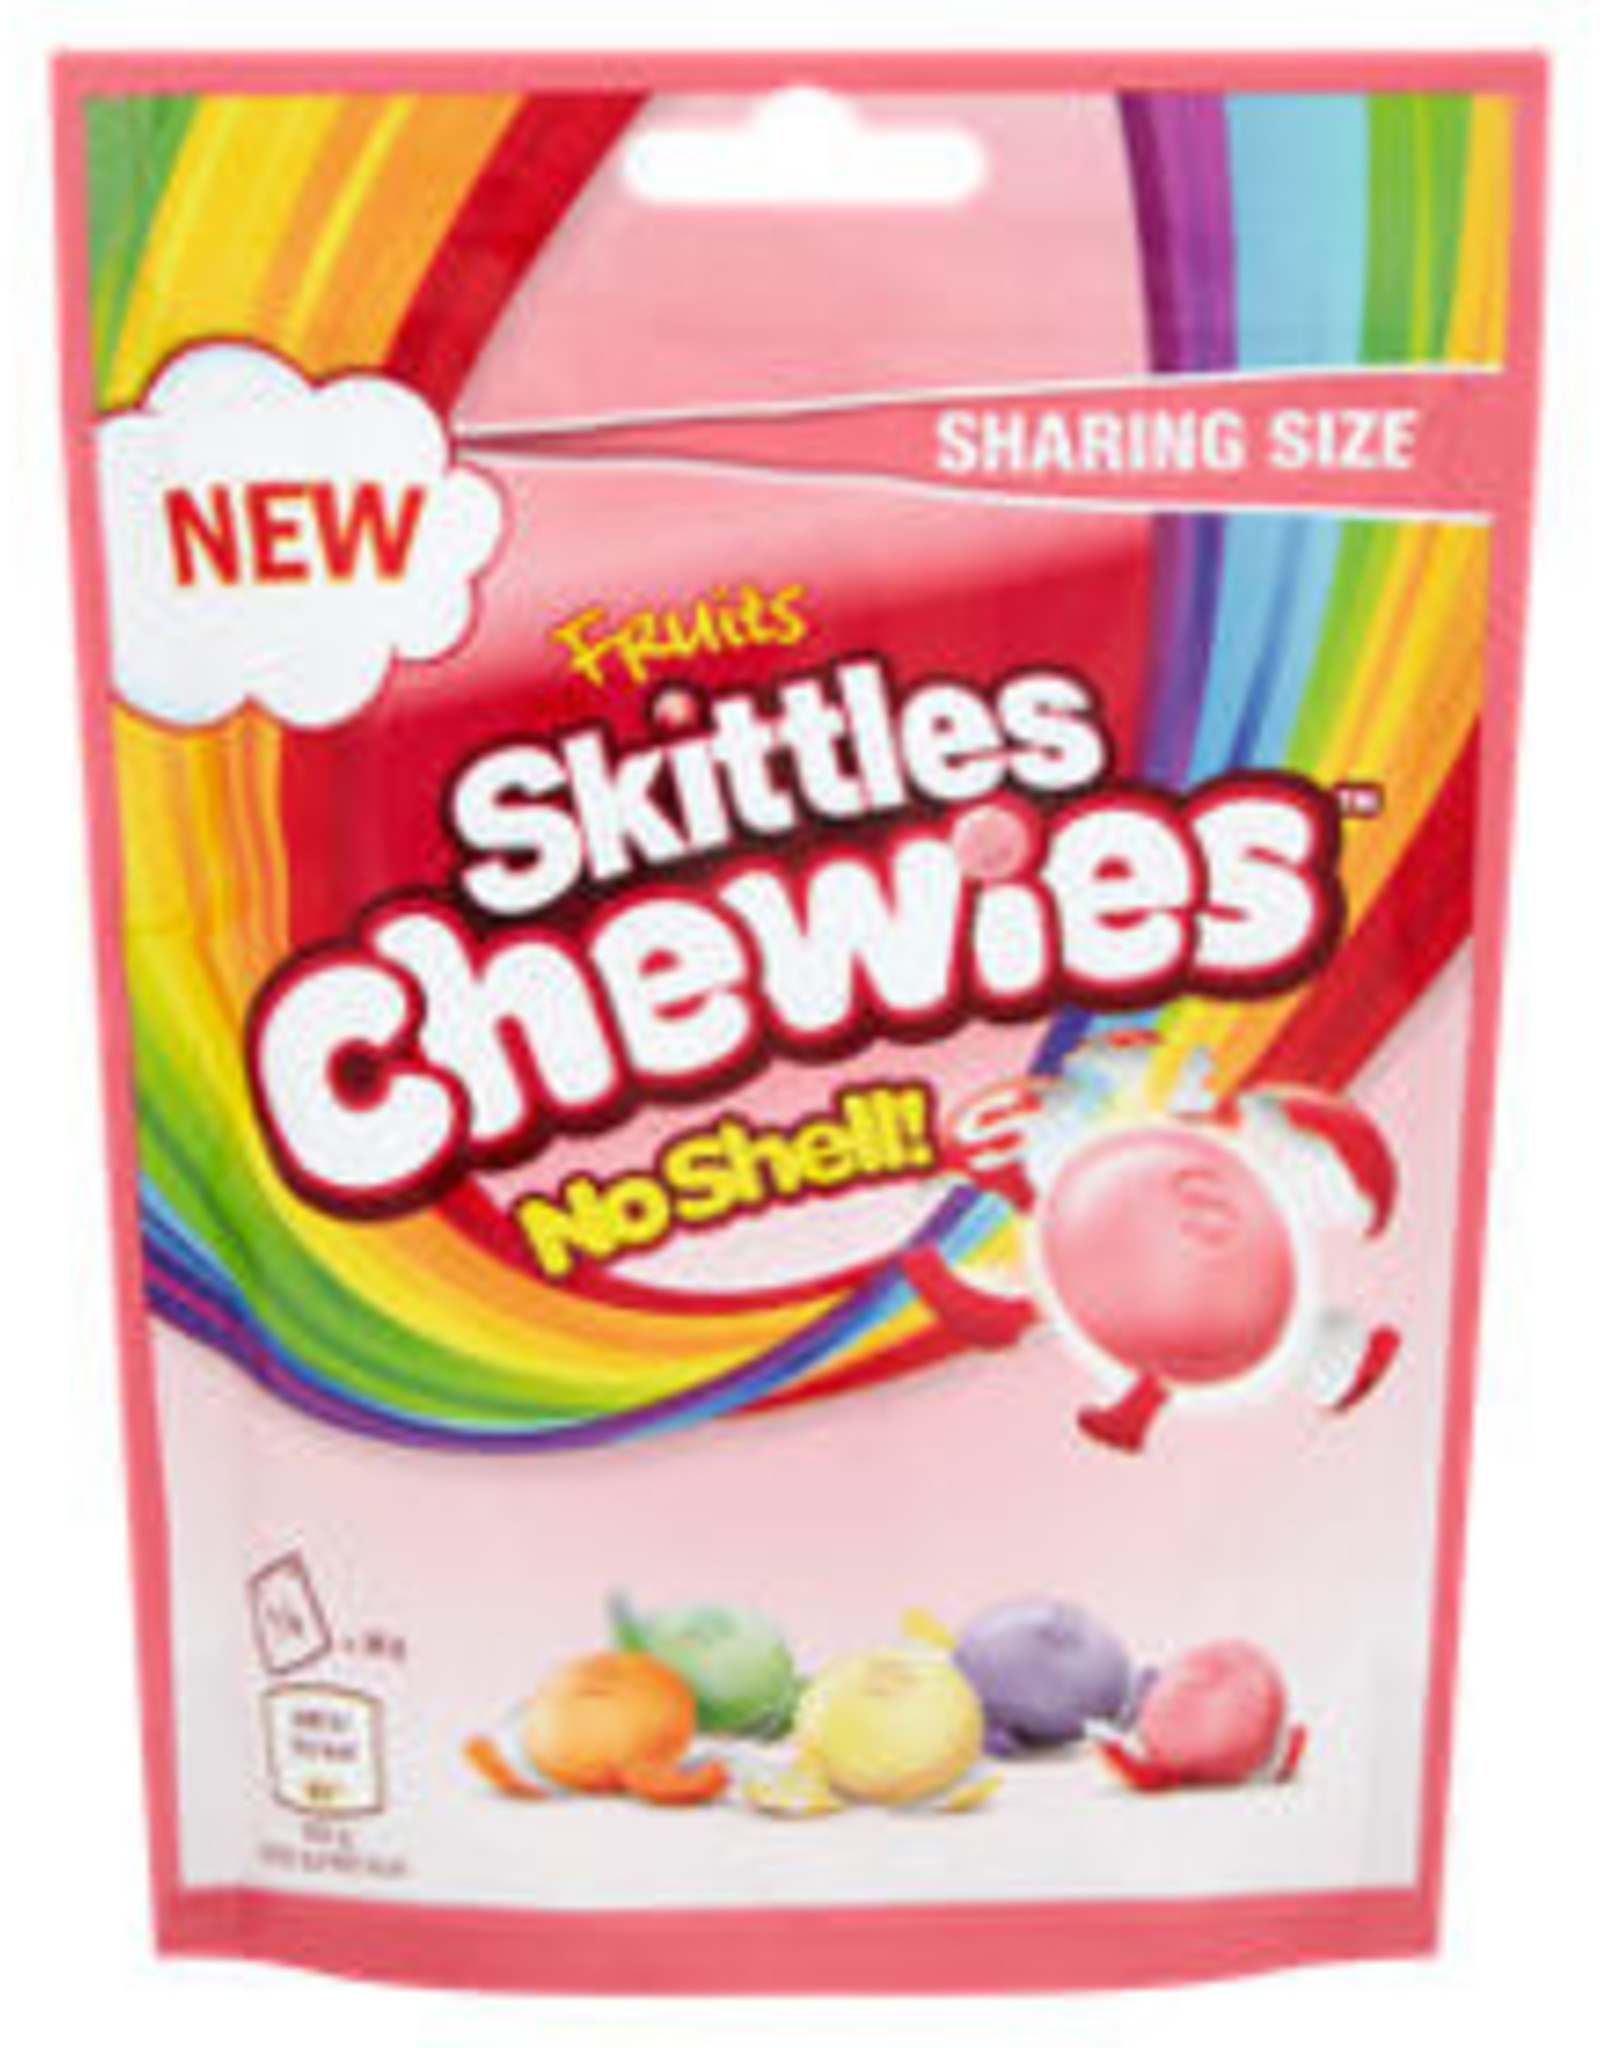 Skittles Copy of Skittles Chewies No Shell 152g